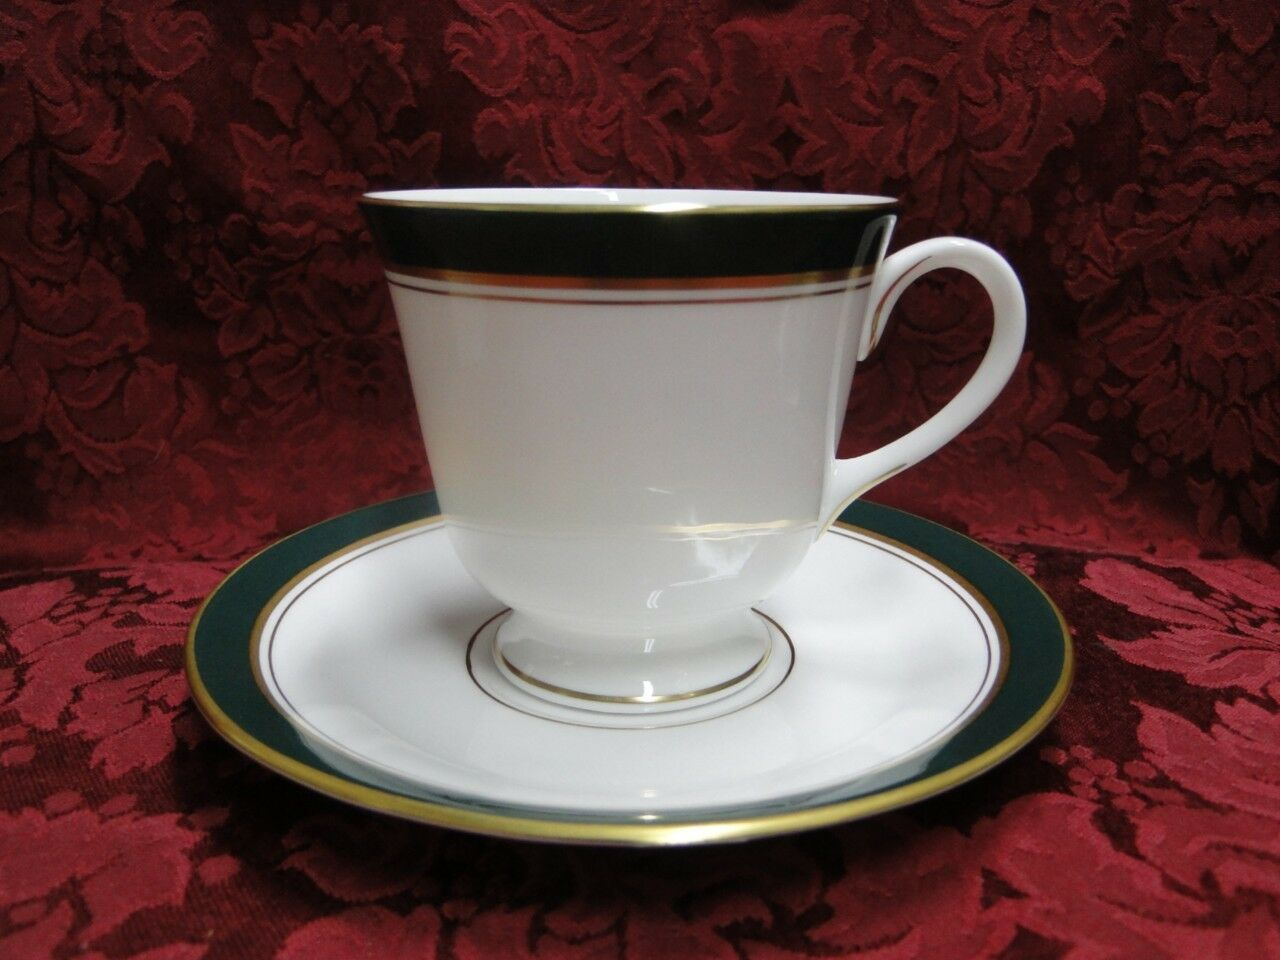 Royal Worcester Howard Leather Green, Gold Trim: Cup & Saucer Set (s)